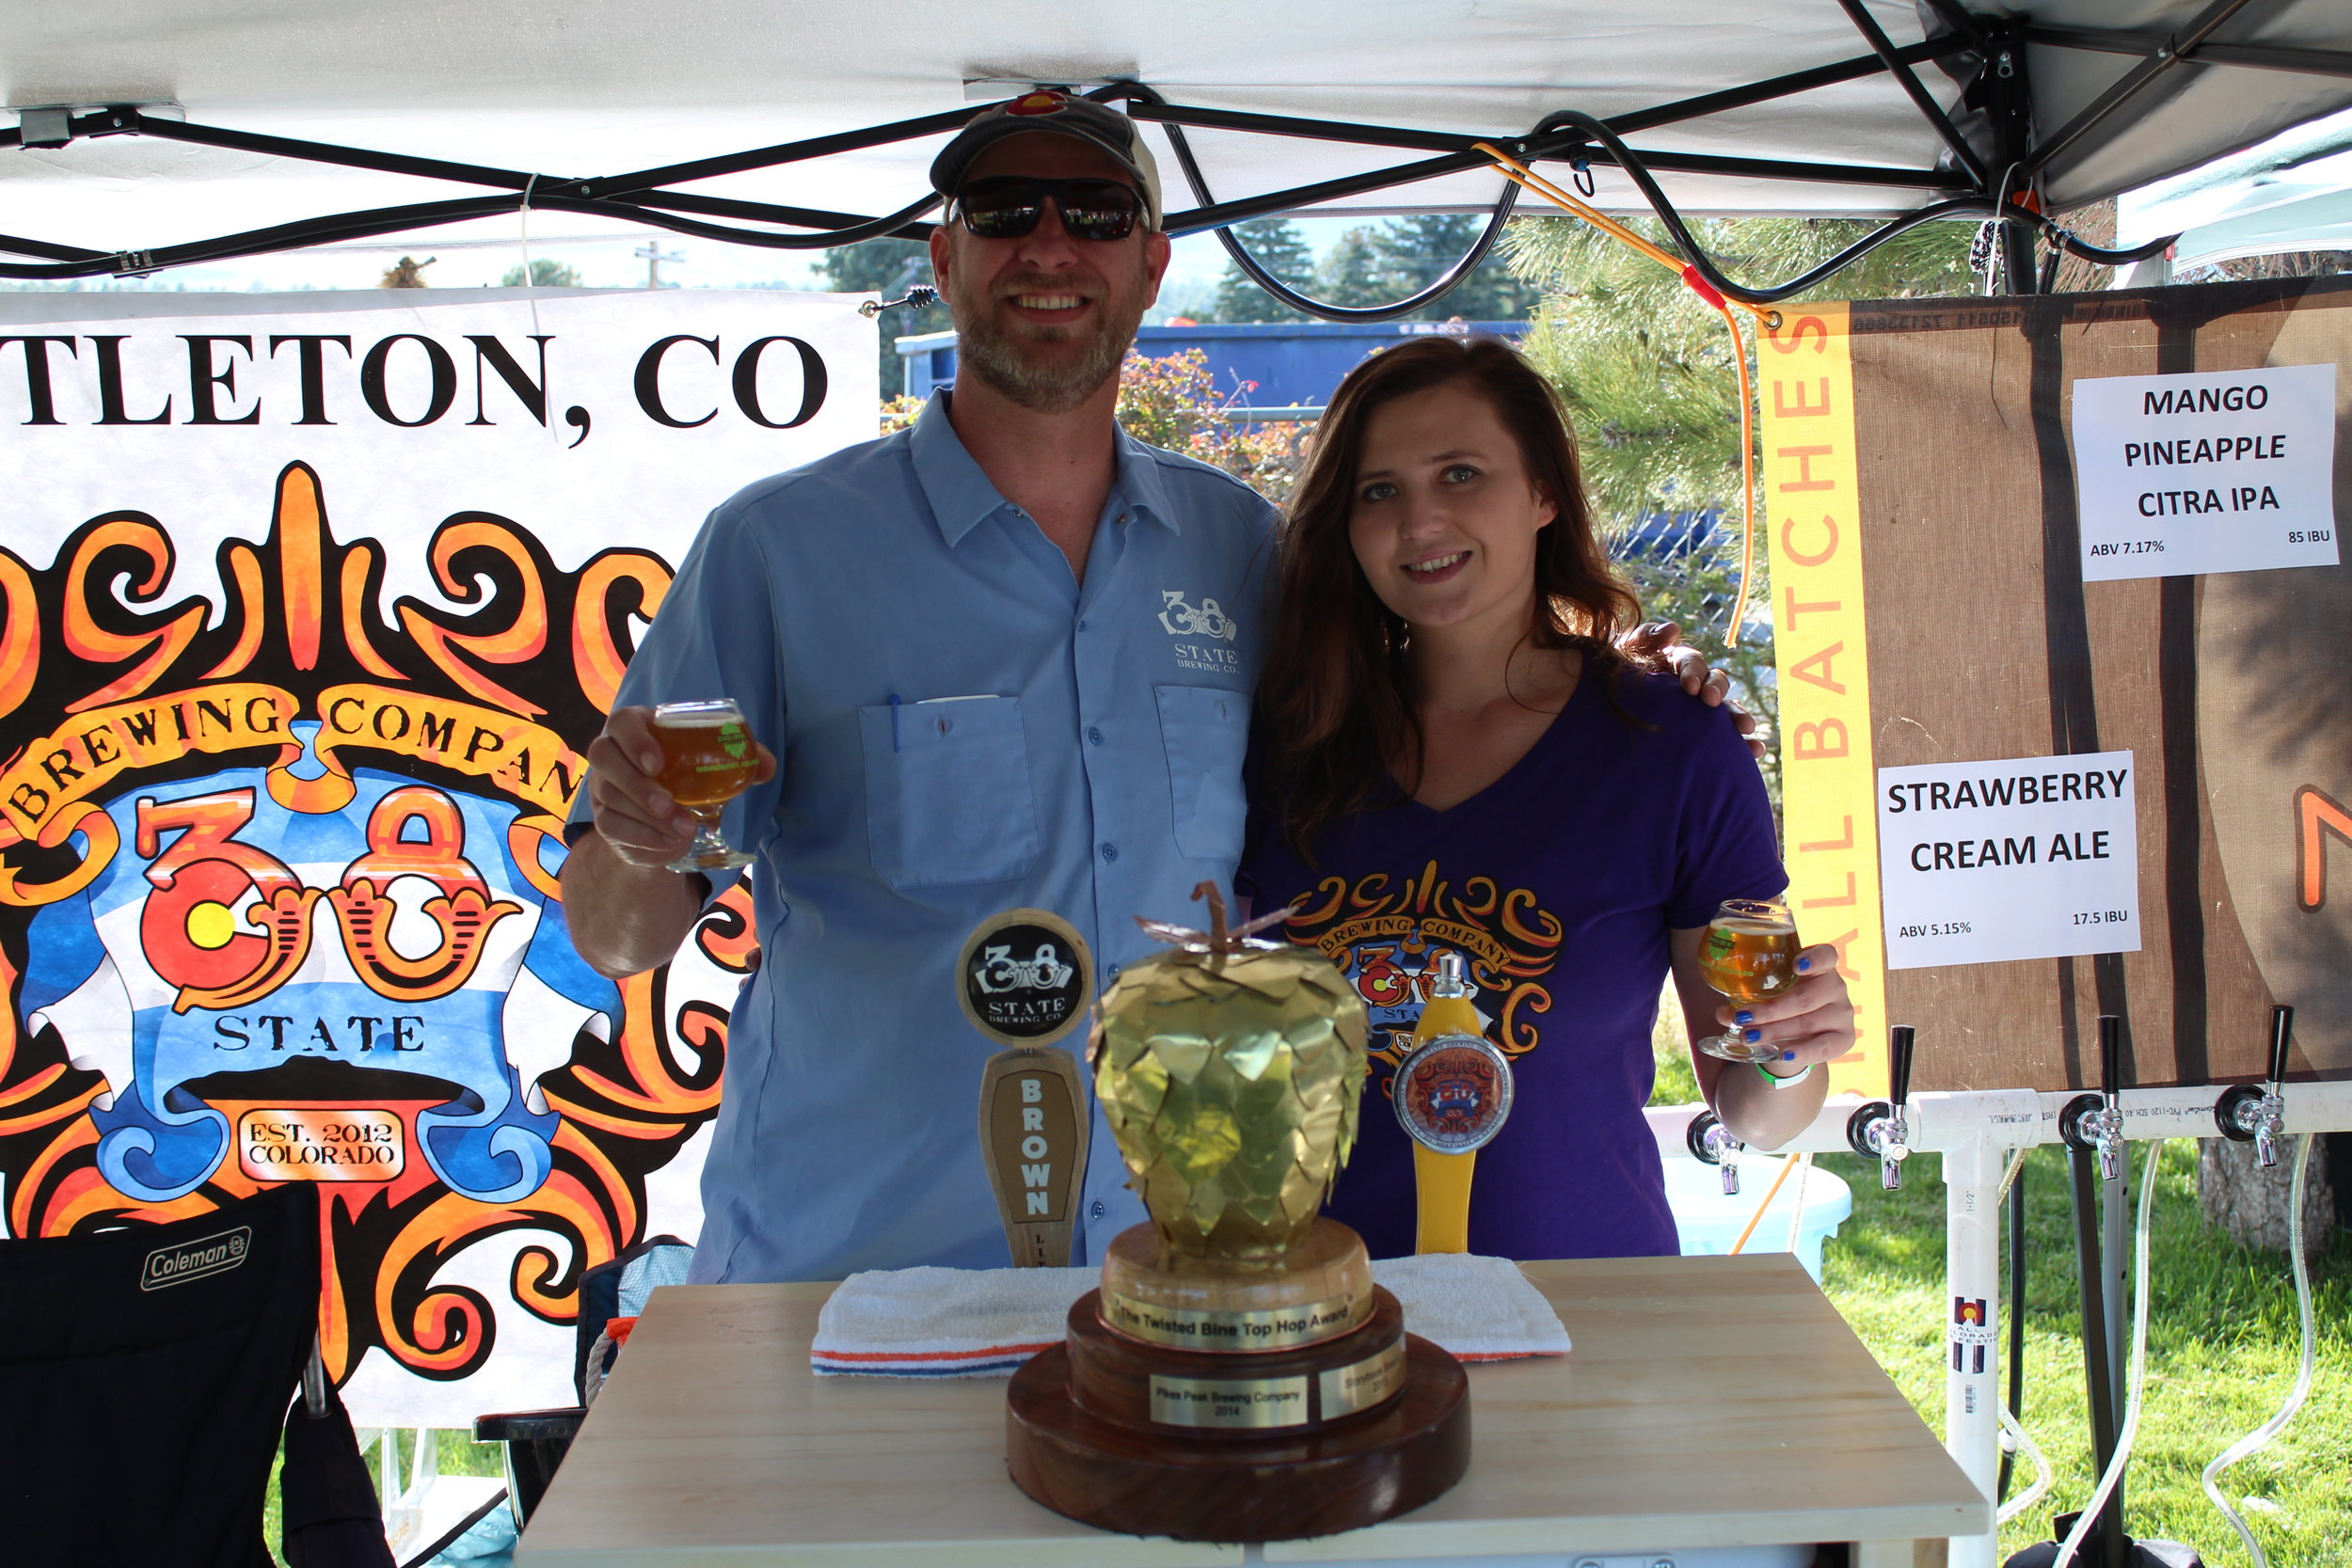 38 State Brewing with their well deserved Top Hop trophy!